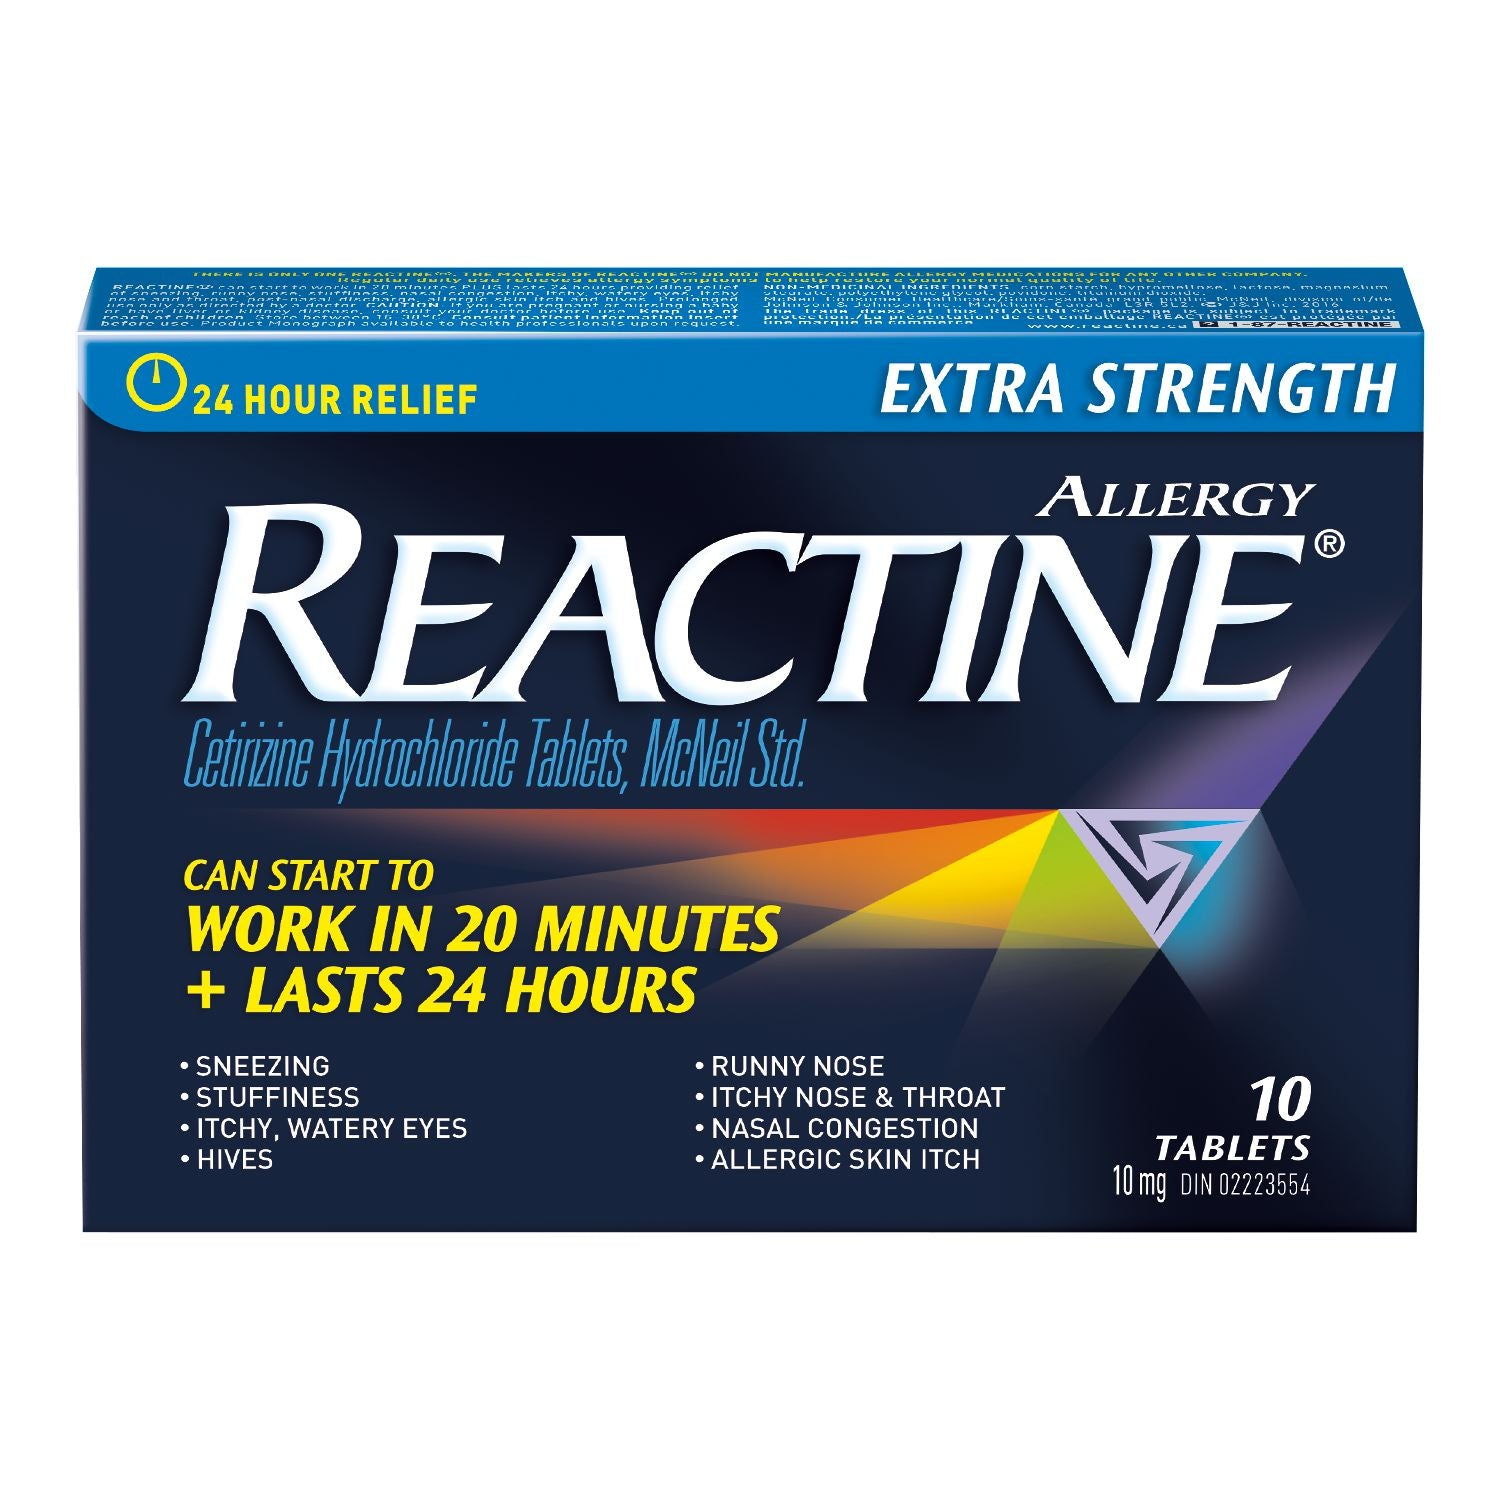 Reactine Allergy Extra Strength Tablets